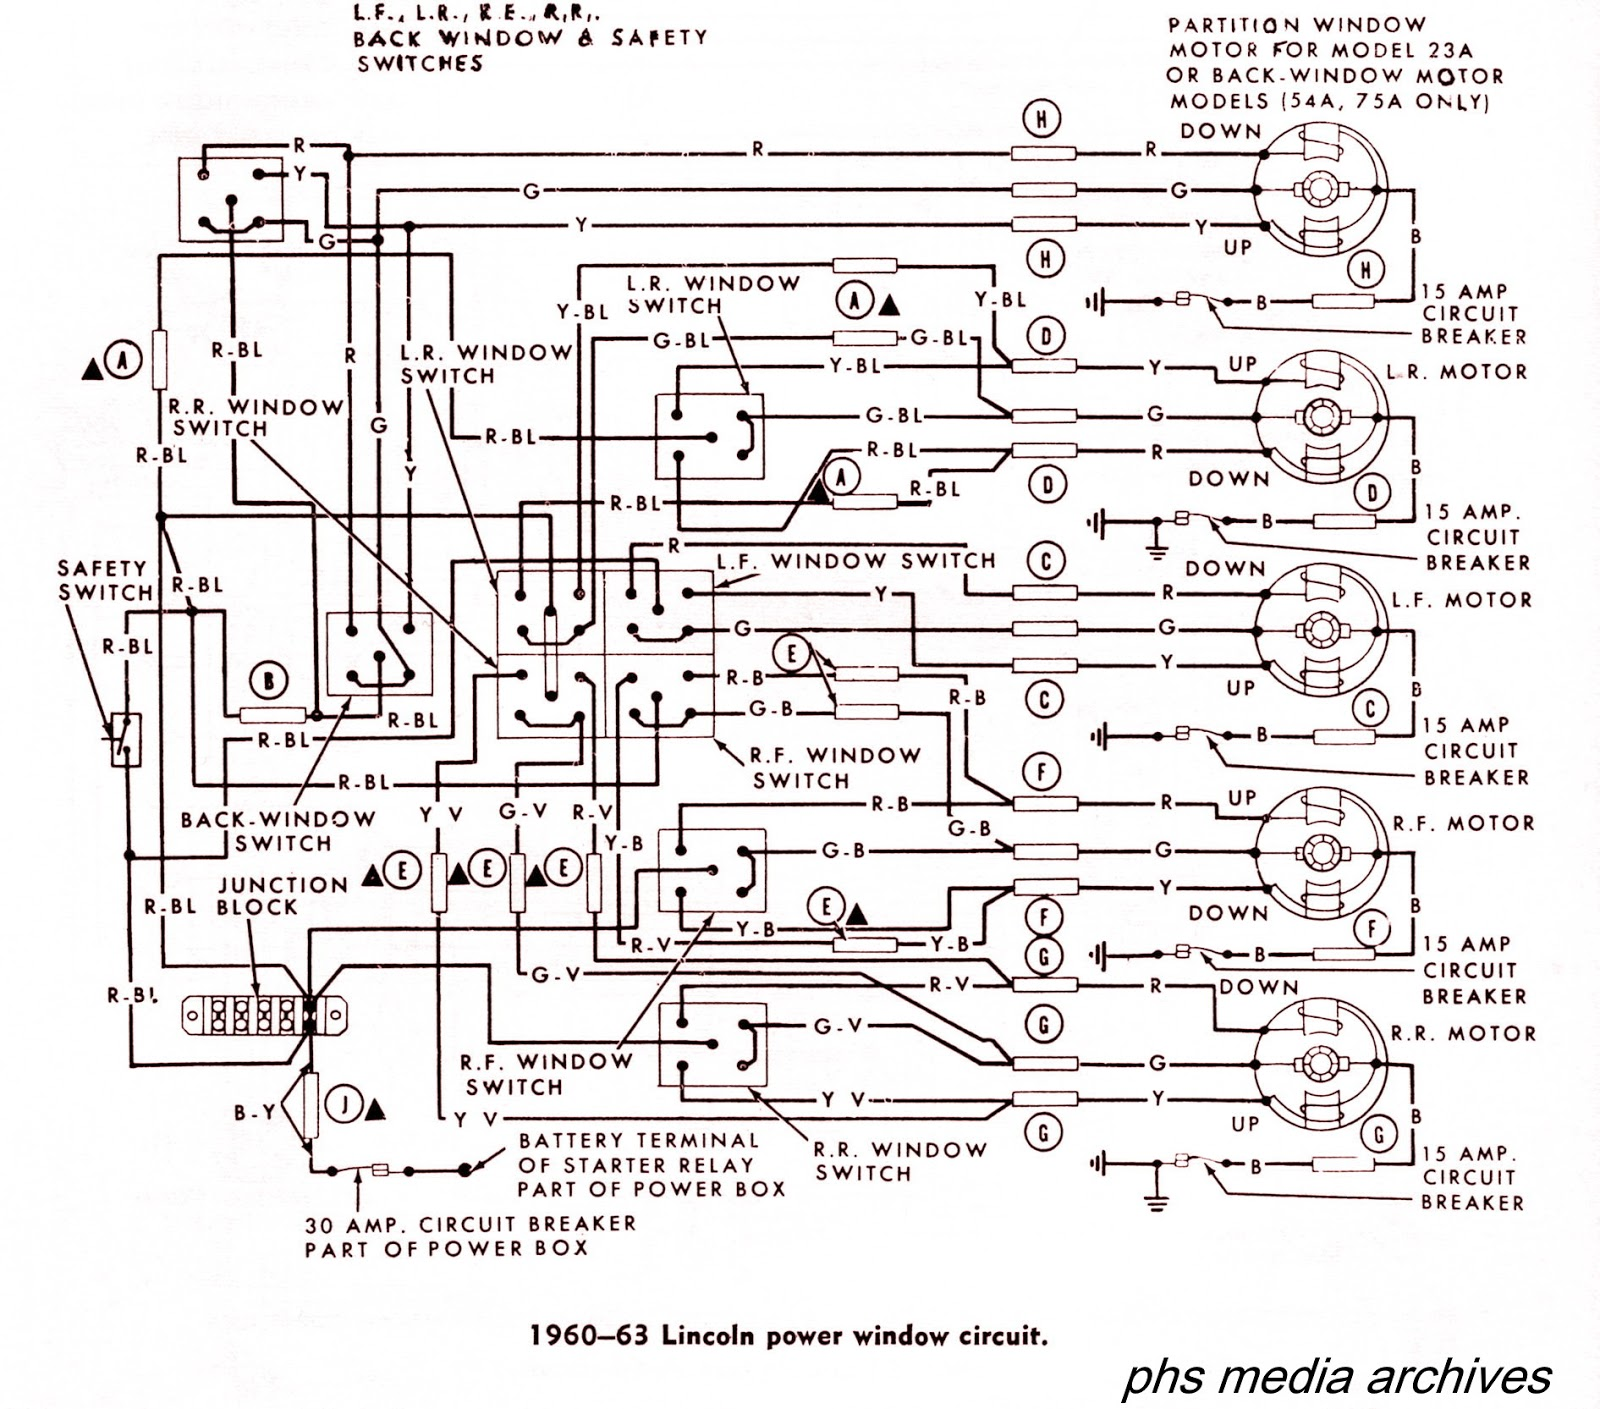 small resolution of tech series 1960 1964 lincoln wiring diagrams phscollectorcarworld lincoln mark 8 wiring diagram lincoln wiring diagrams